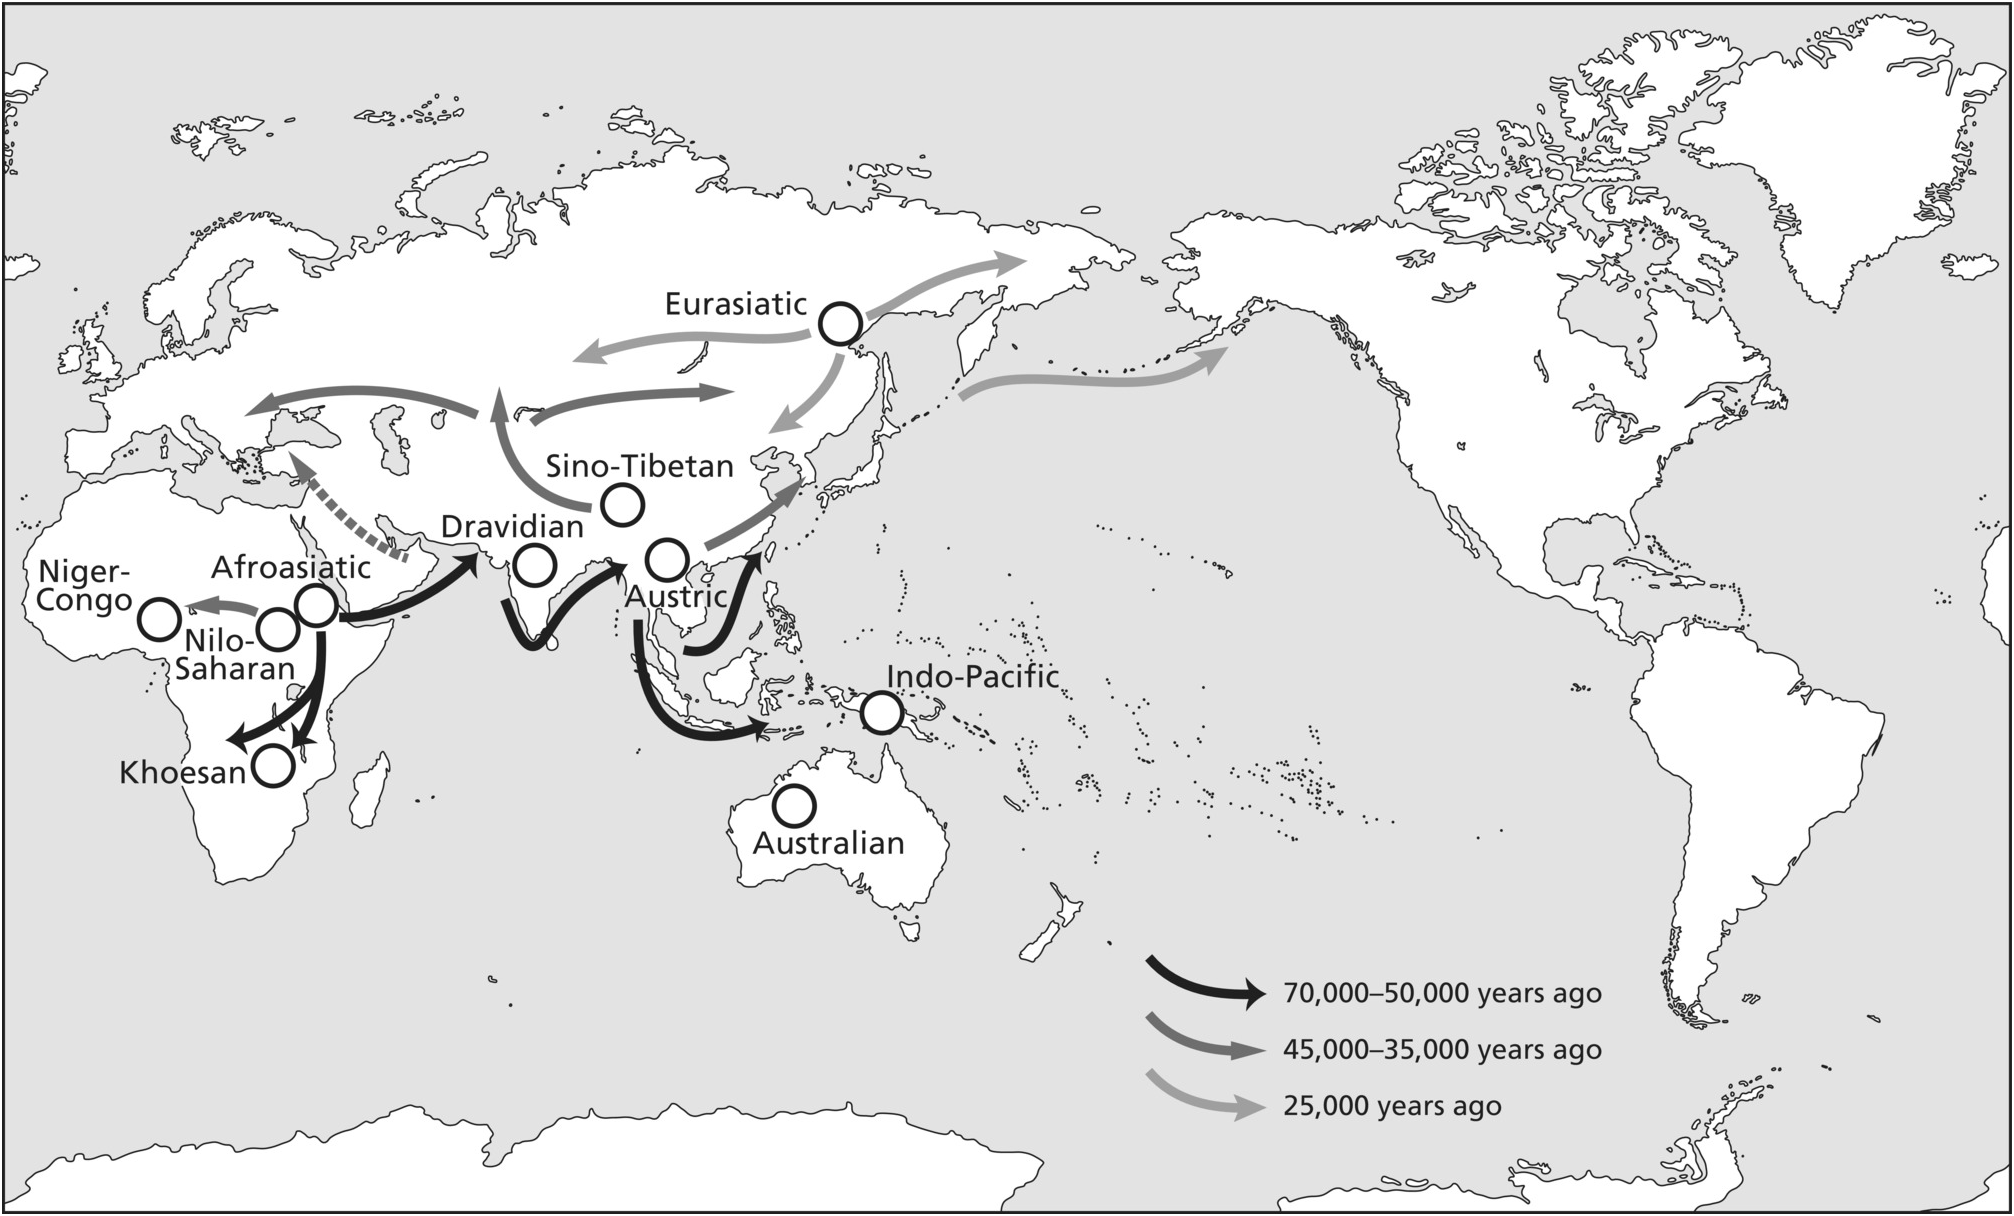 Map Of Australia 20000 Years Ago.Migration In Human History Chapter 12 The Cambridge World History